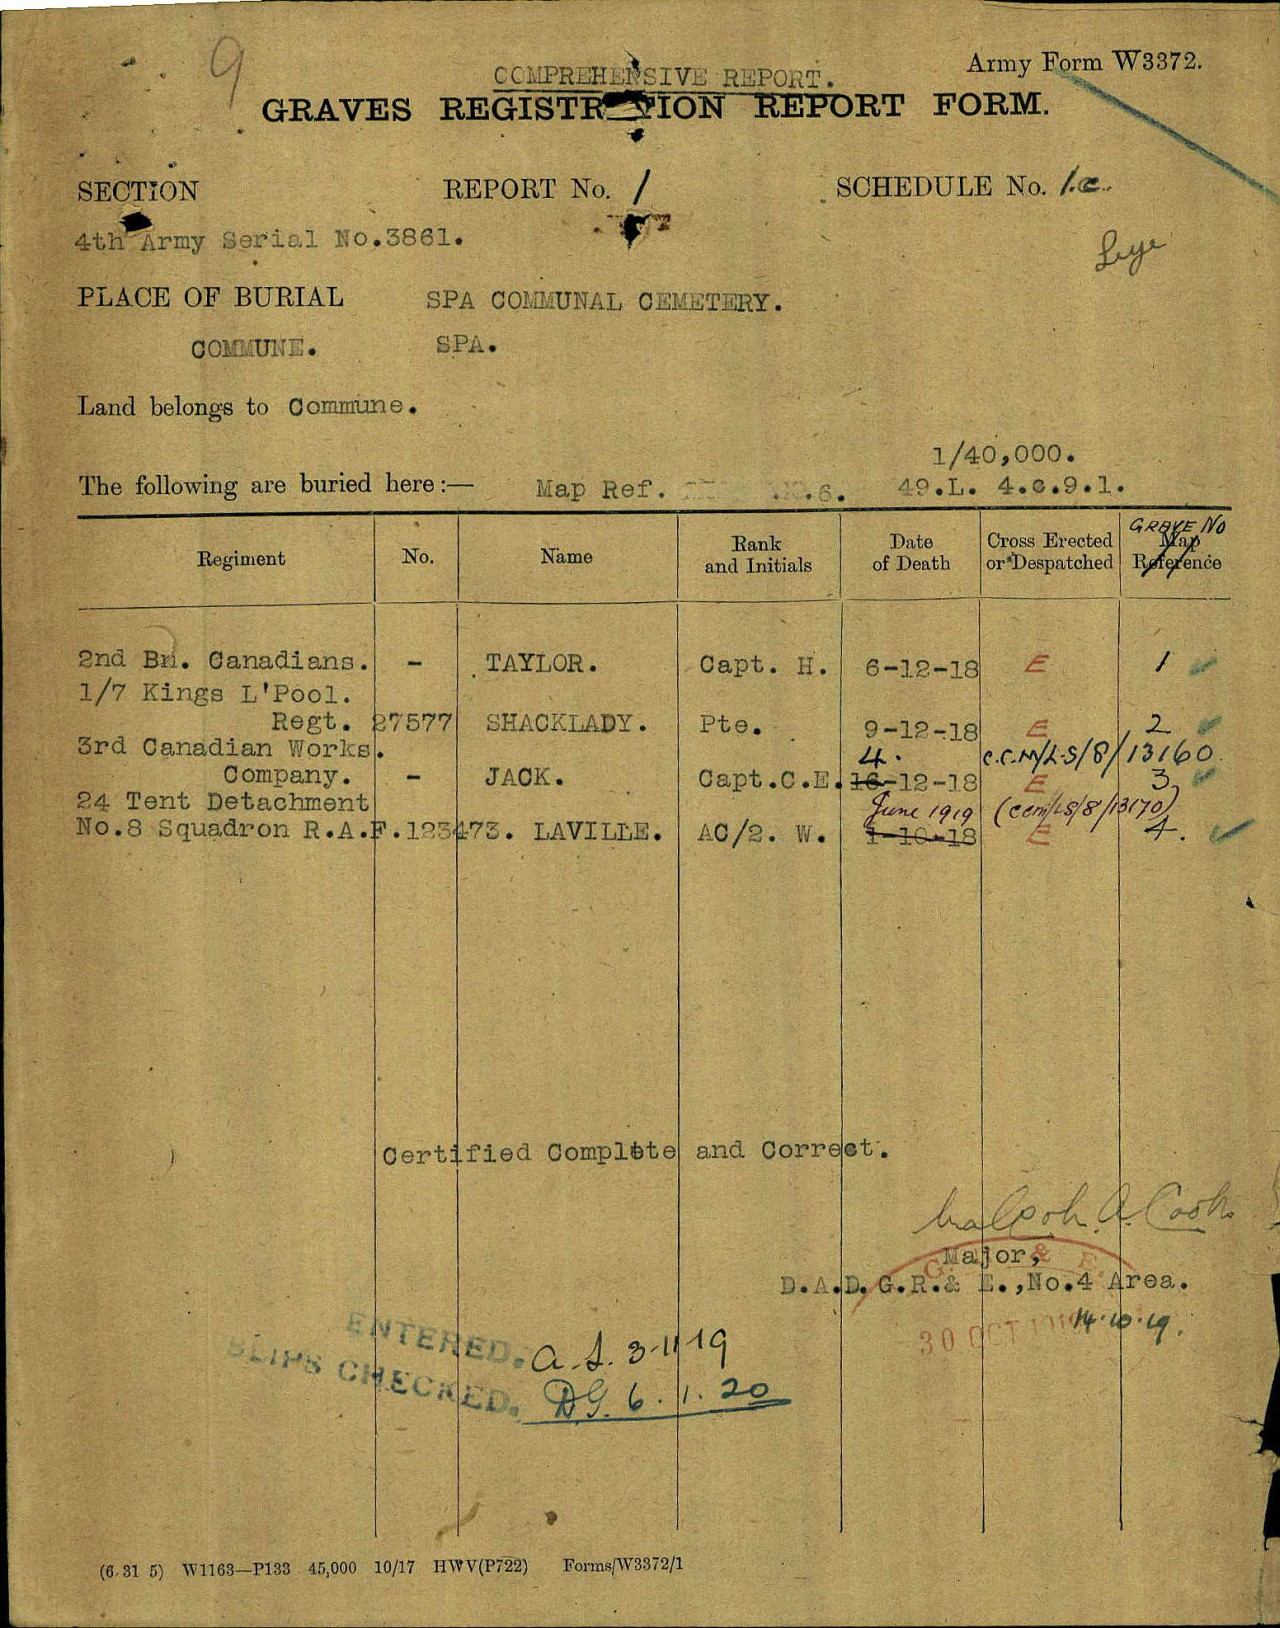 Report– Captain Harry Taylor is one of two Canadian Captains that died at No. 64 Casualty Clearing Station in December 1918, as the Canadian's marched to the Rhine after the Armistice. It appears both died on pneumonia (perhaps the Spanish Flu). The image shows the Grave Registration Report Form from the CWGC for the Spa Communal Cemetery in the Liege area of Belgium.